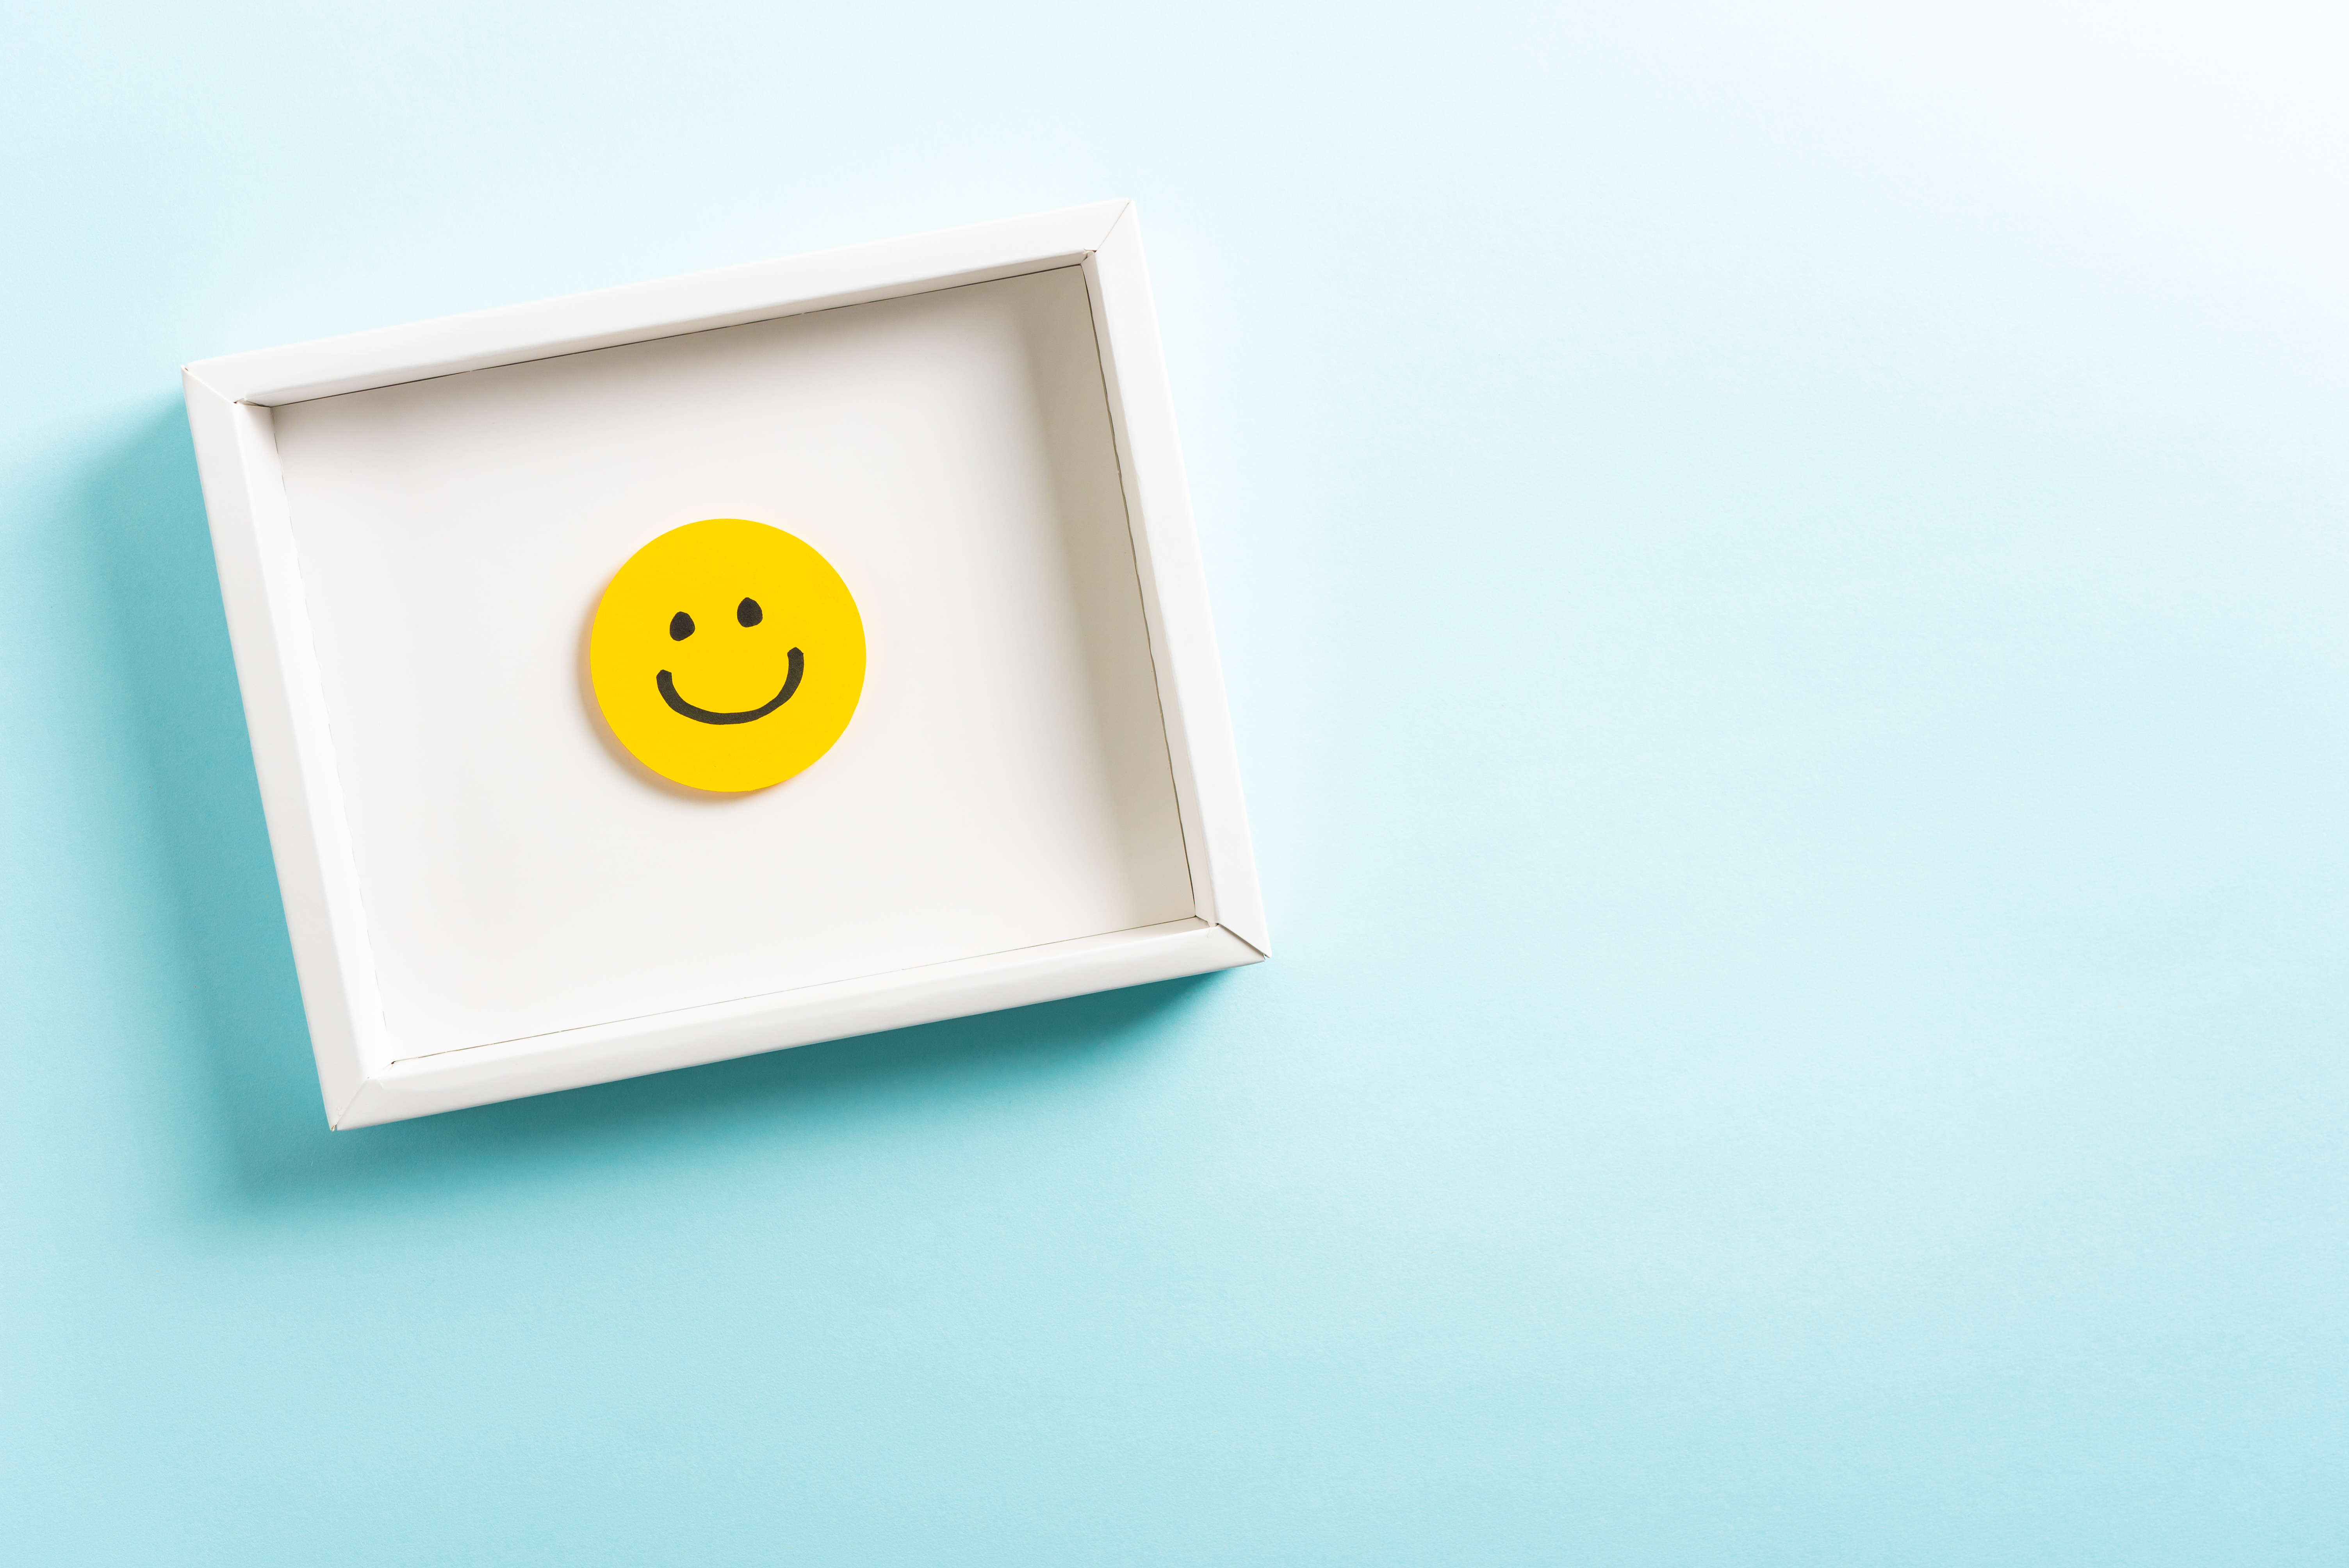 The wellbeing quiz: how good are you at staying happy and healthy?